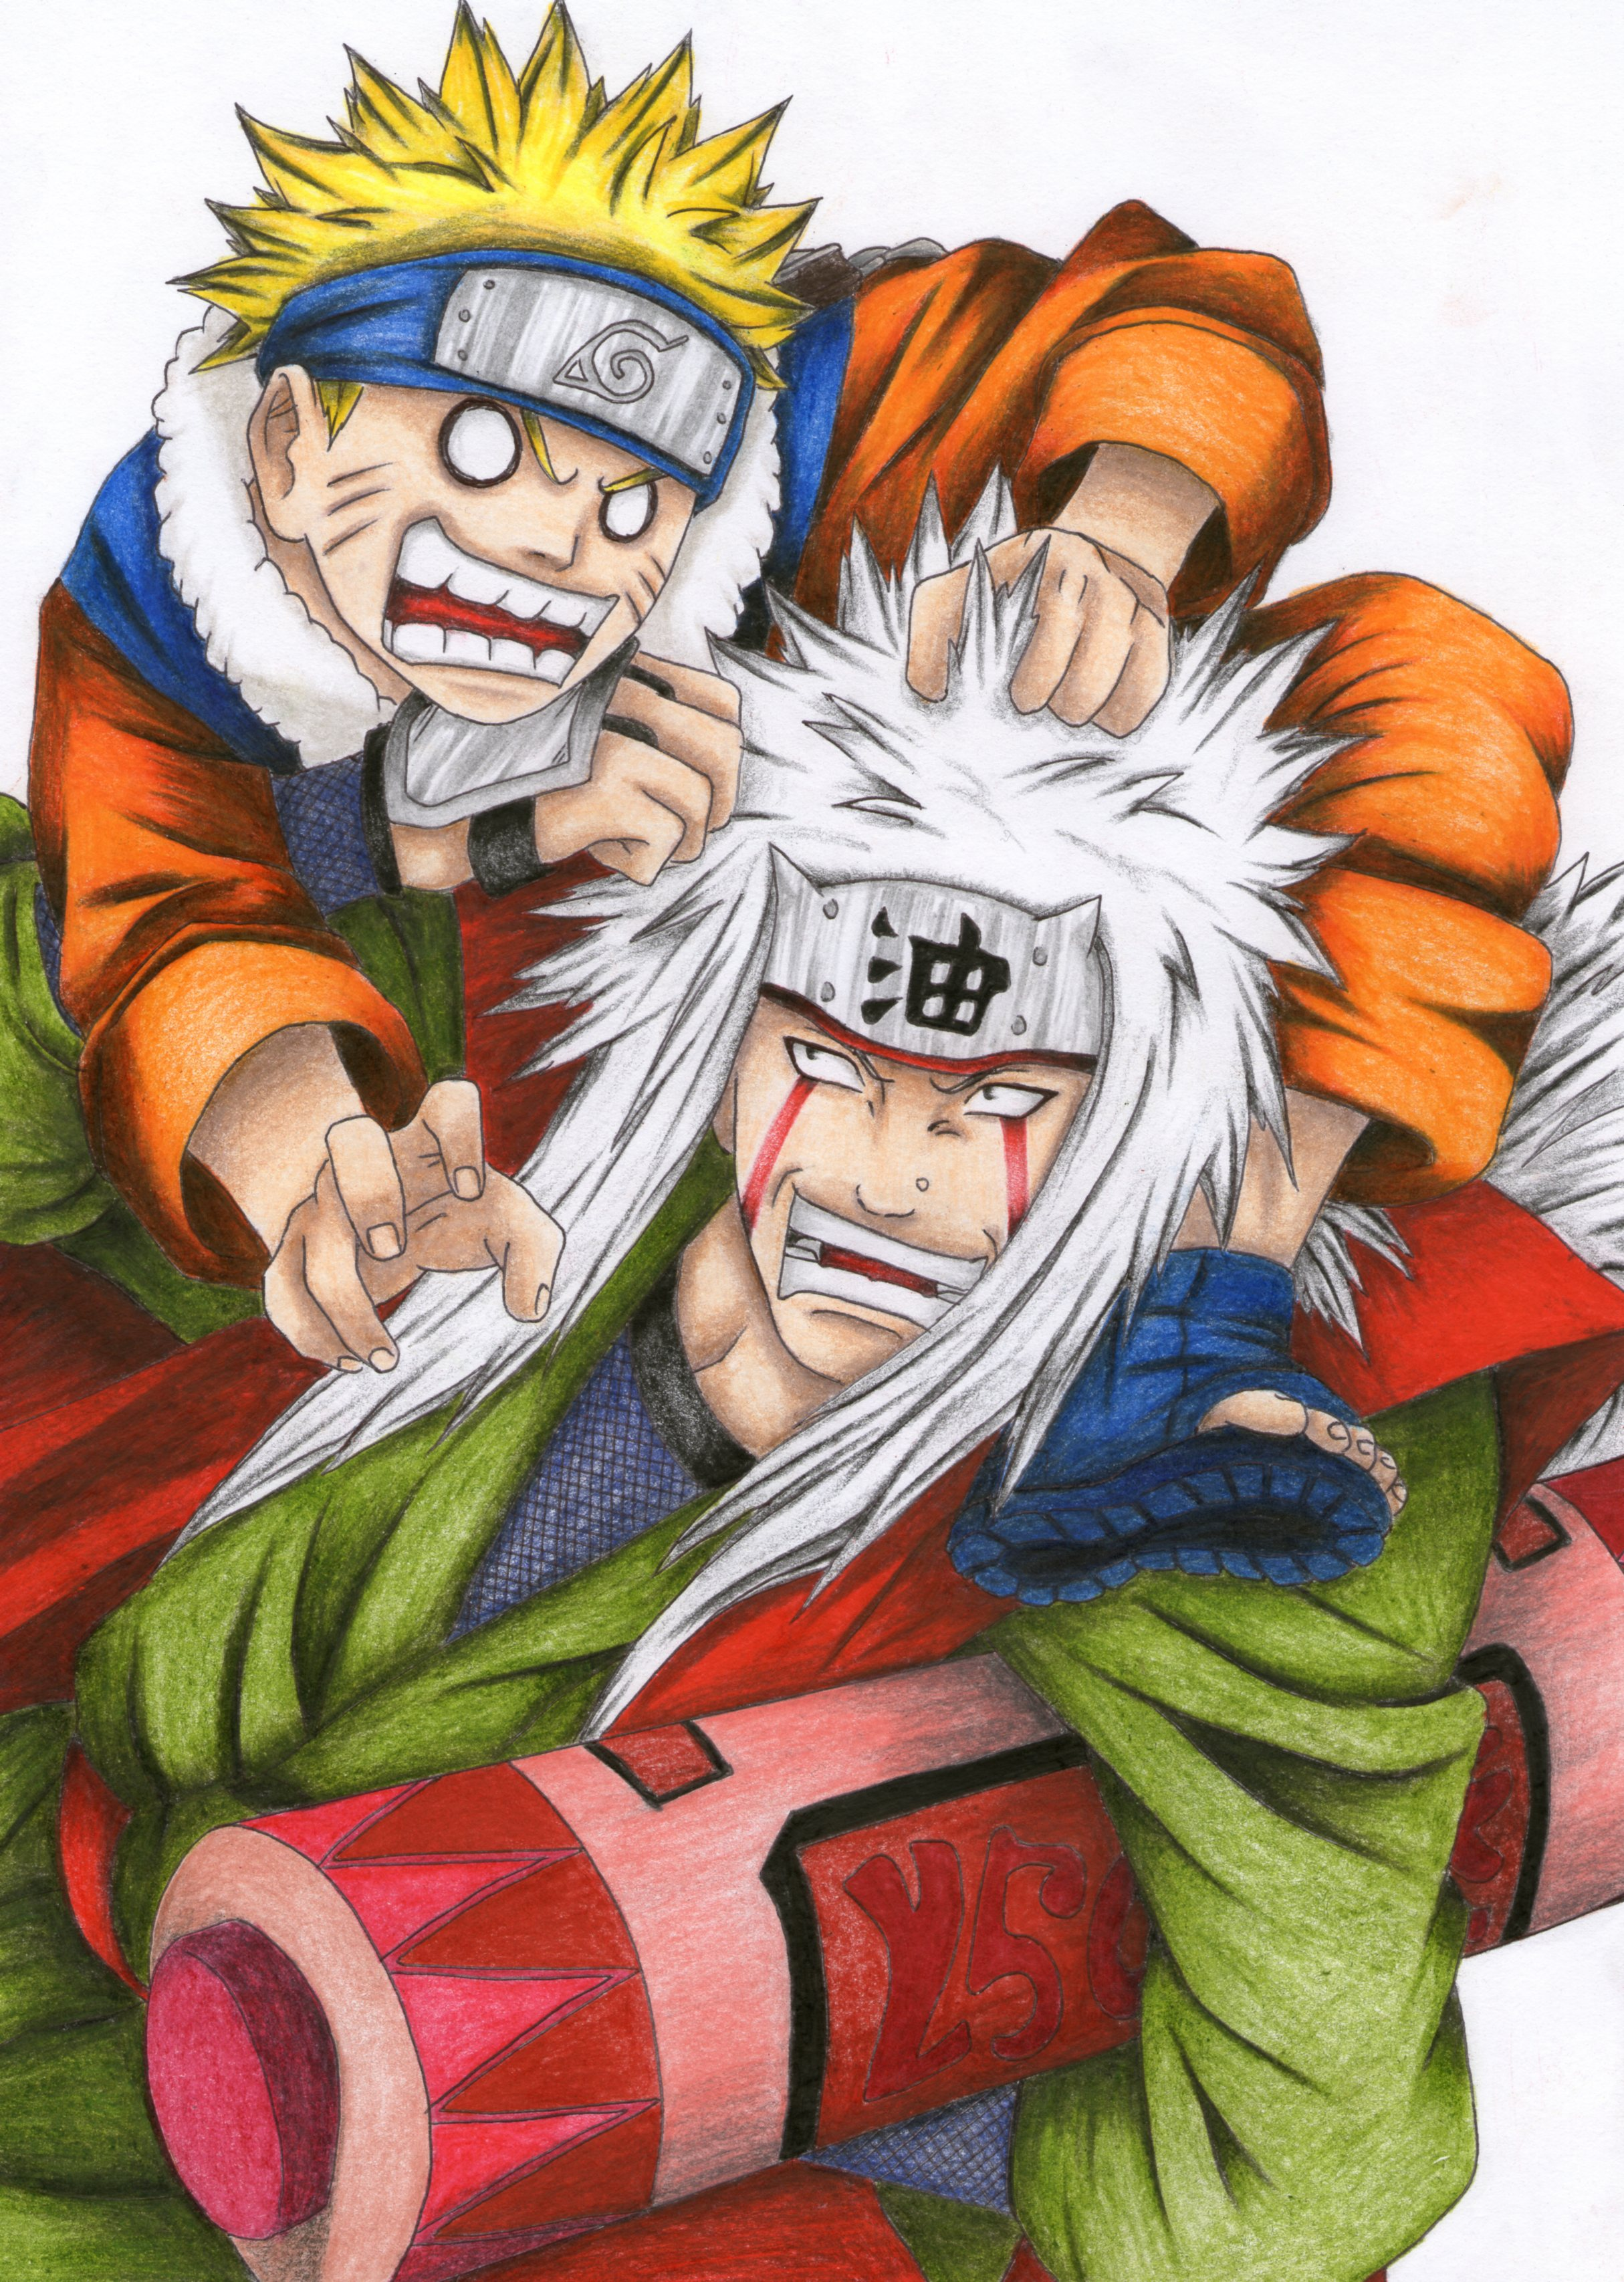 Tags: Anime, NARUTO, Ninja, Uzumaki Naruto, Humor, Fighting, Jiraiya